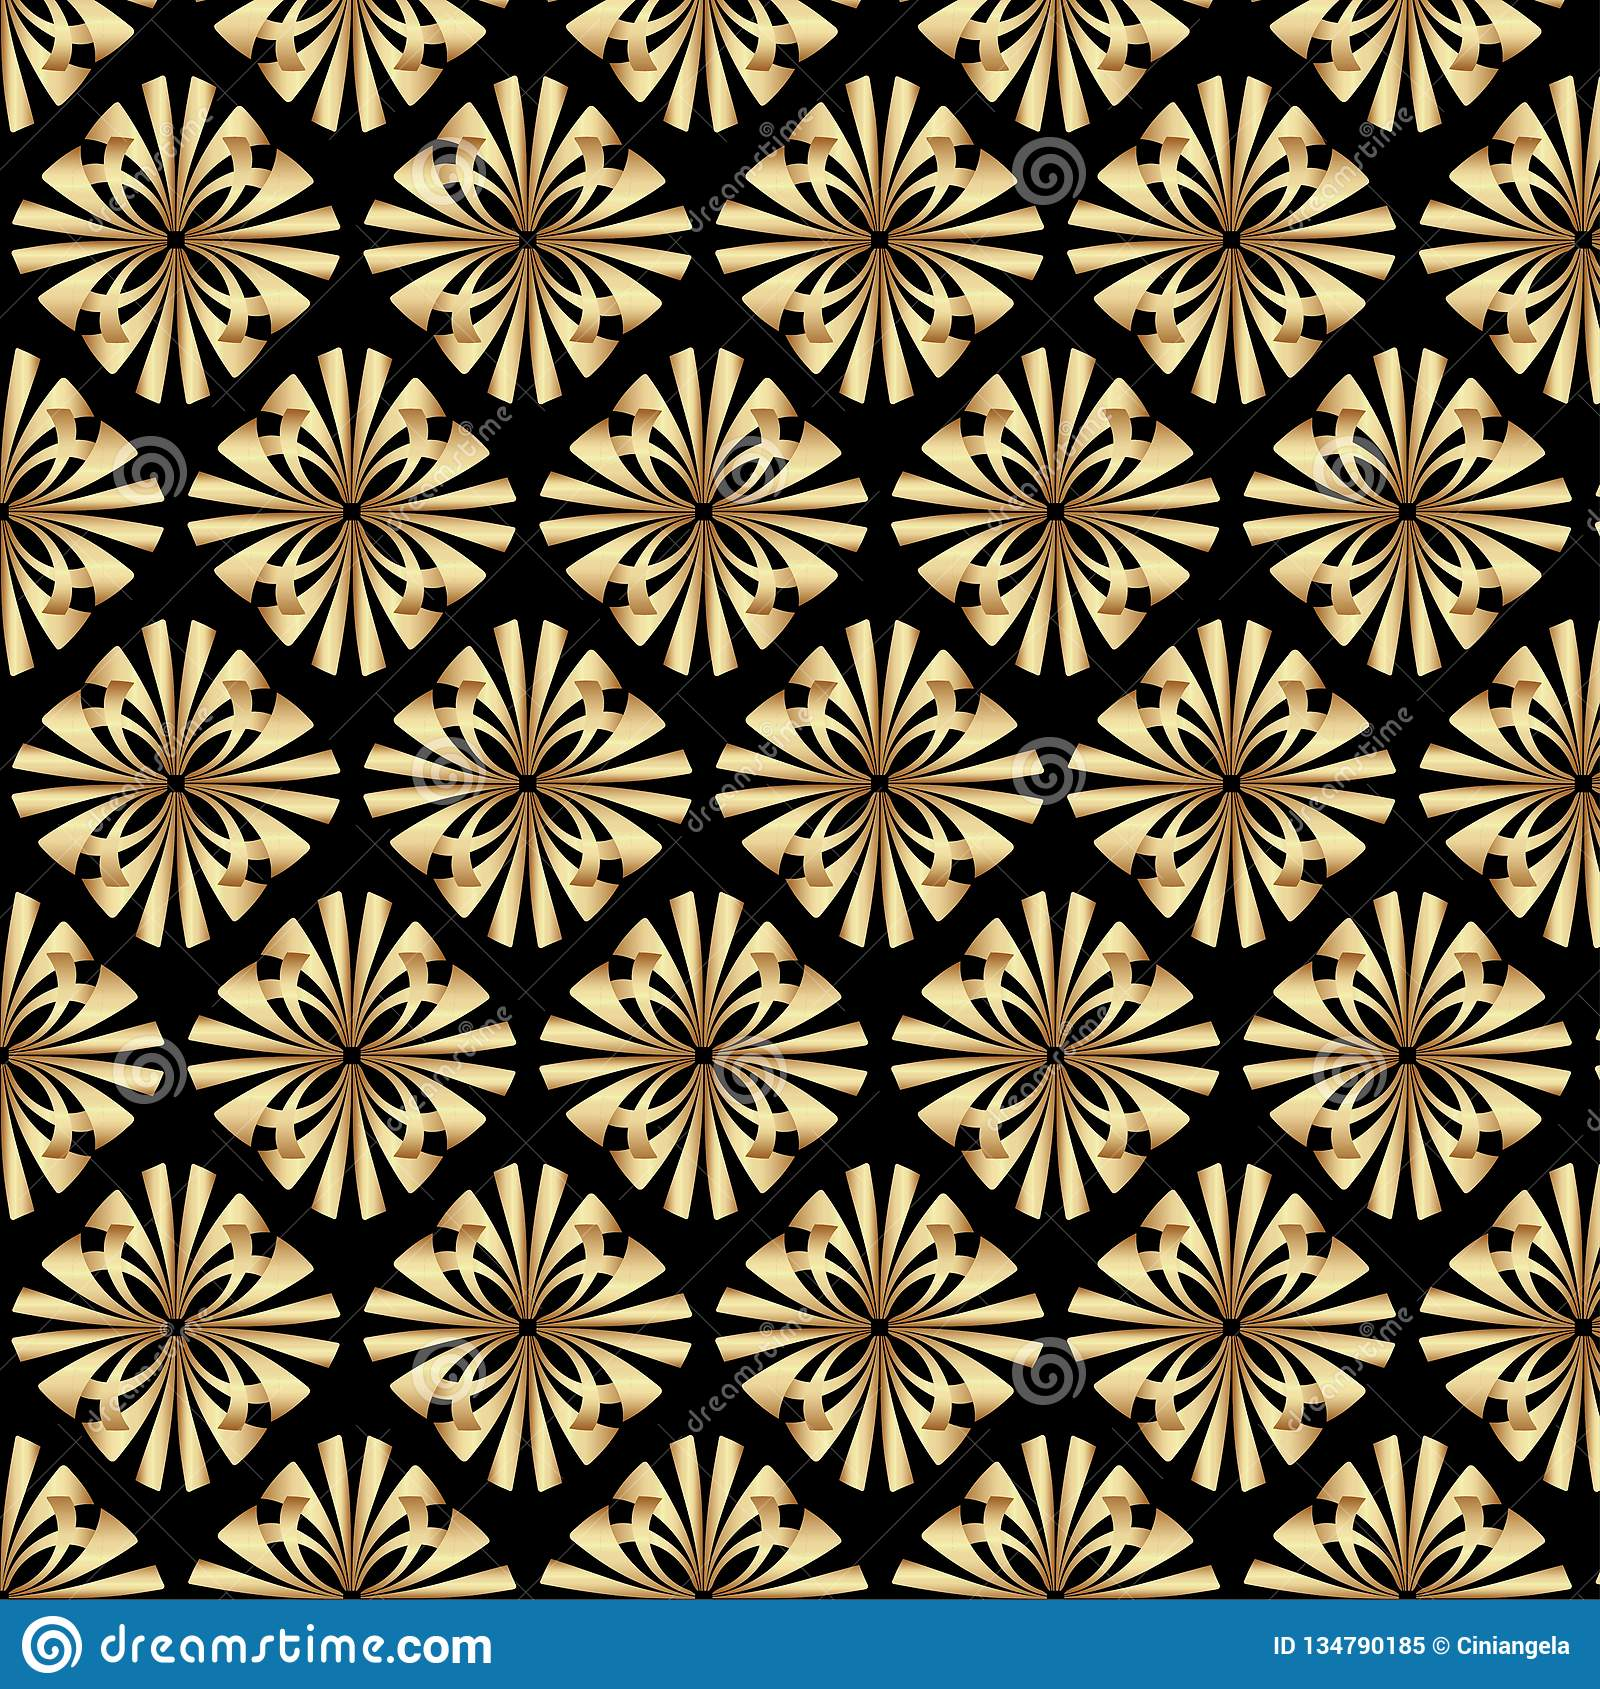 Art Deco Style & Light Gold Gatsby Art Deco Floral Pattern Background Design Stock